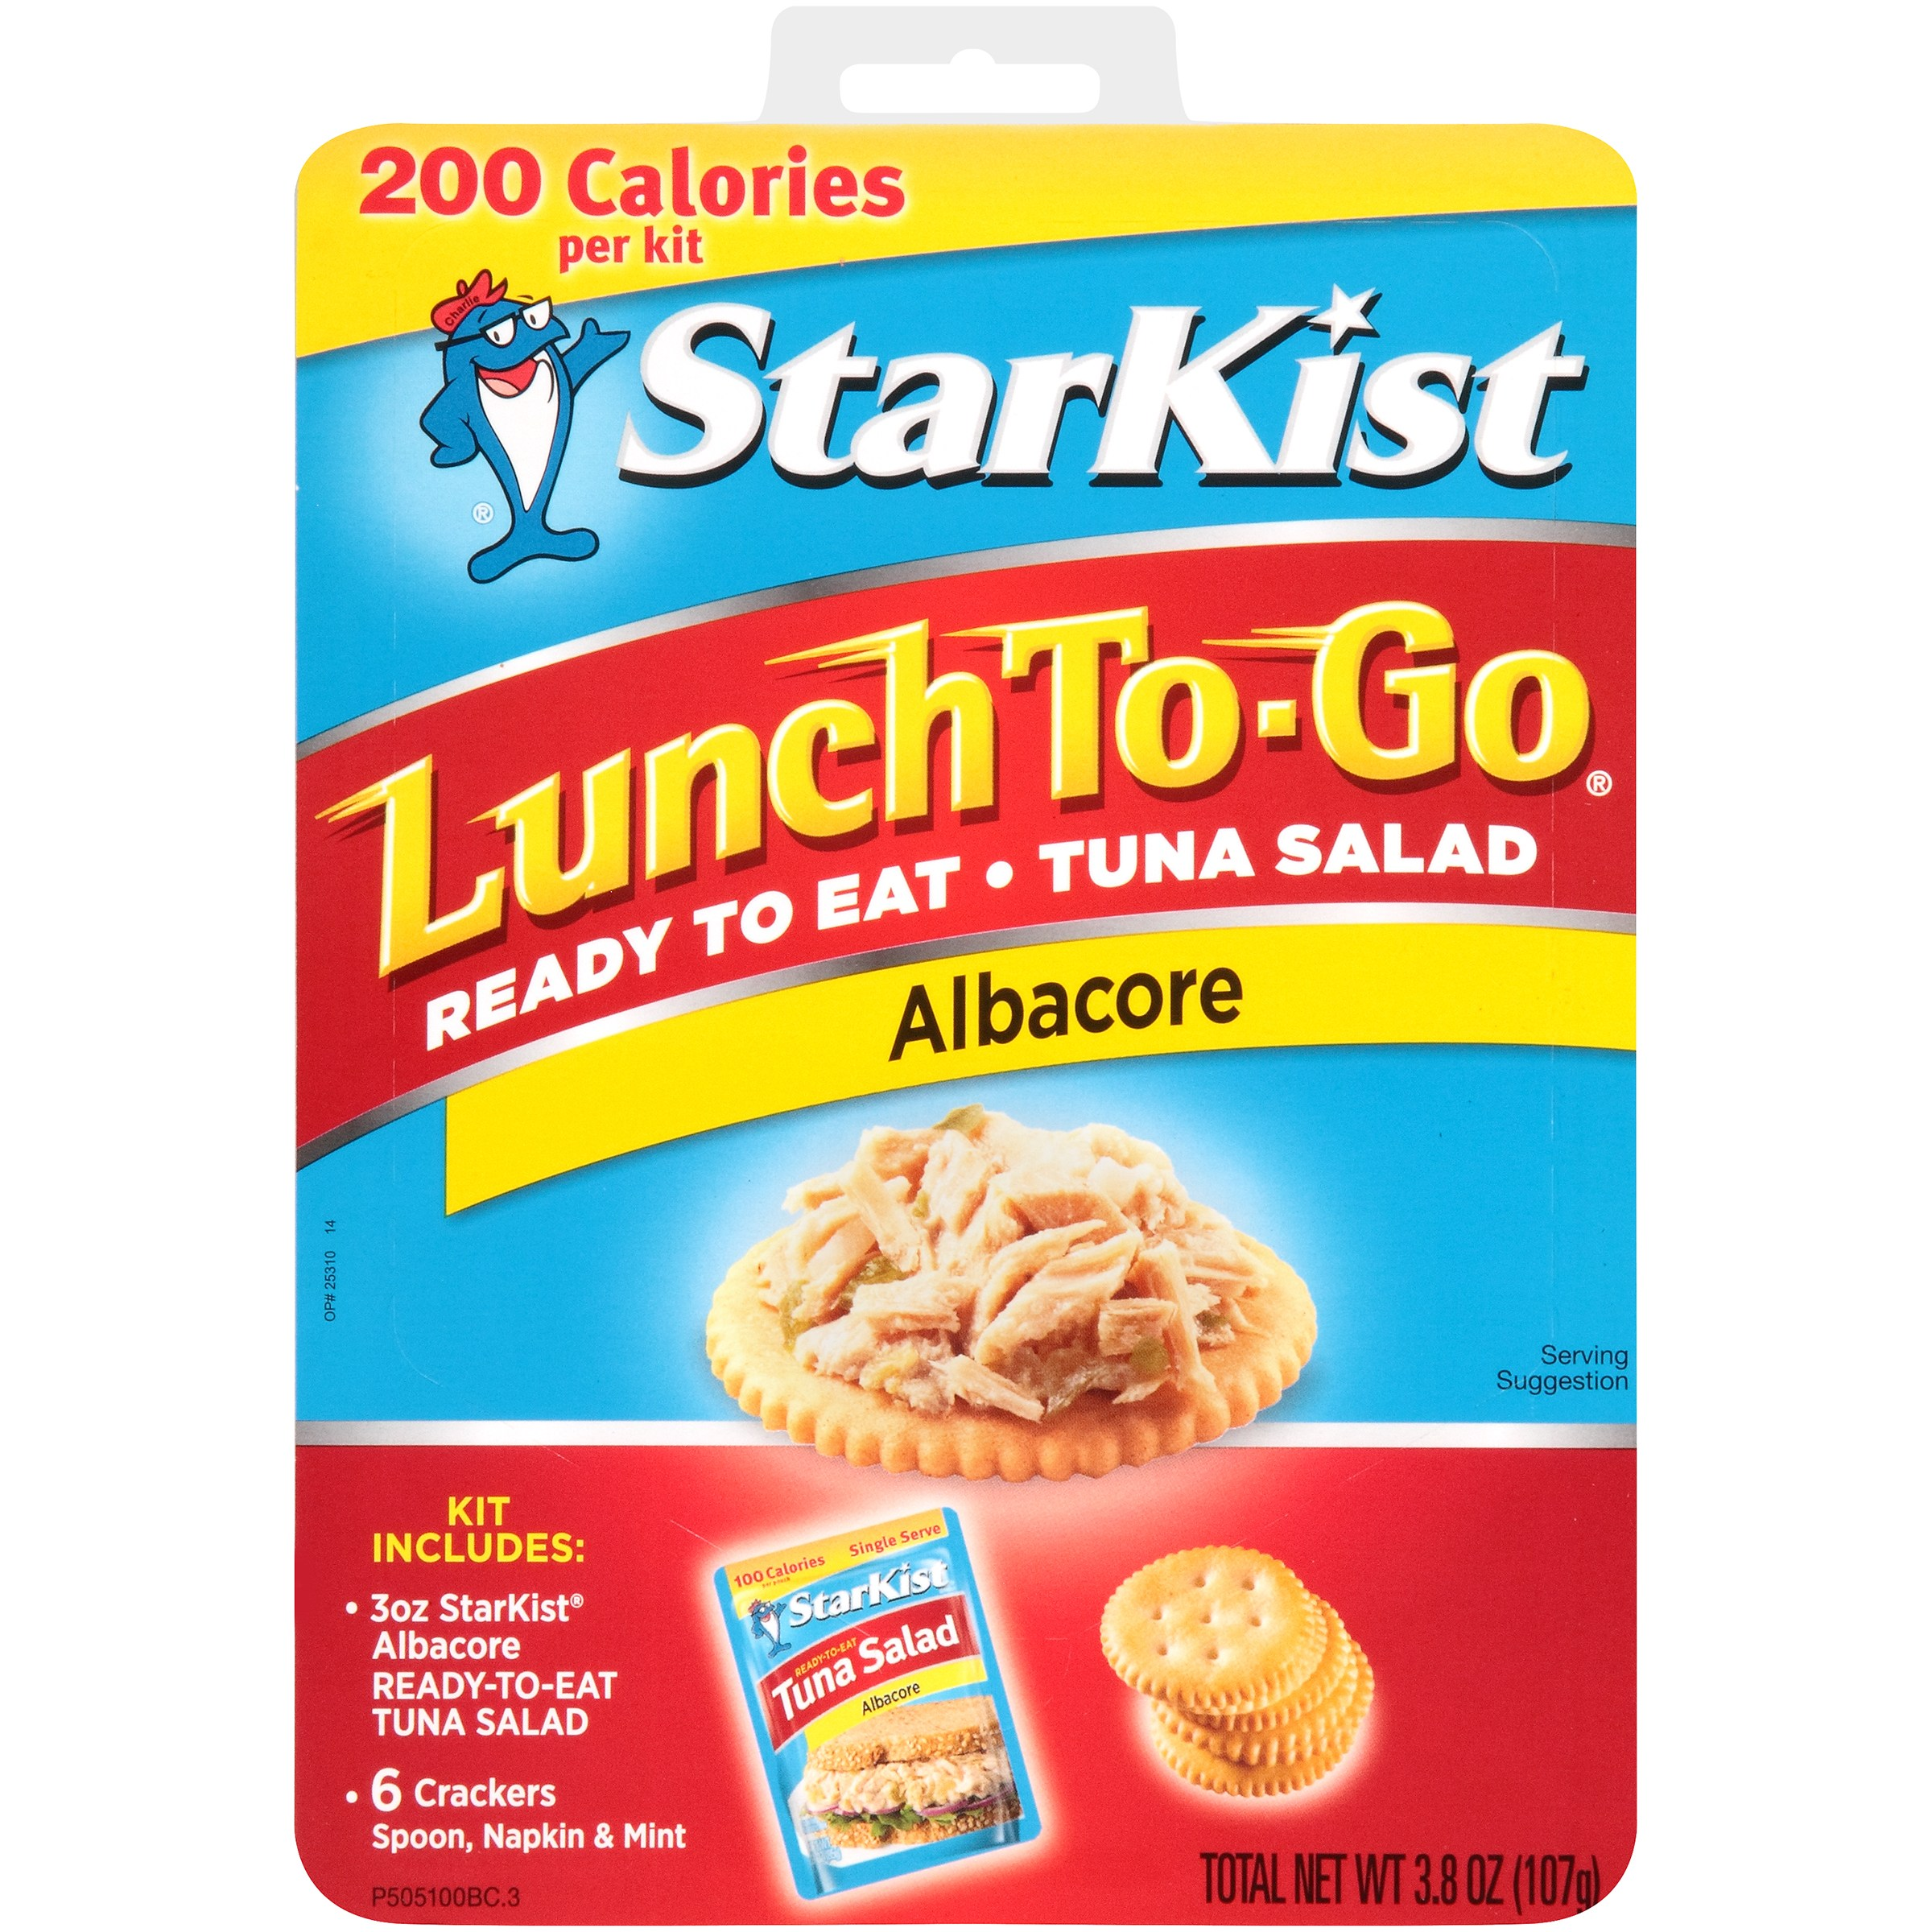 StarKist Lunch To-Go, Ready-to-Eat Tuna Salad, Albacore, 3.8 Ounce Box